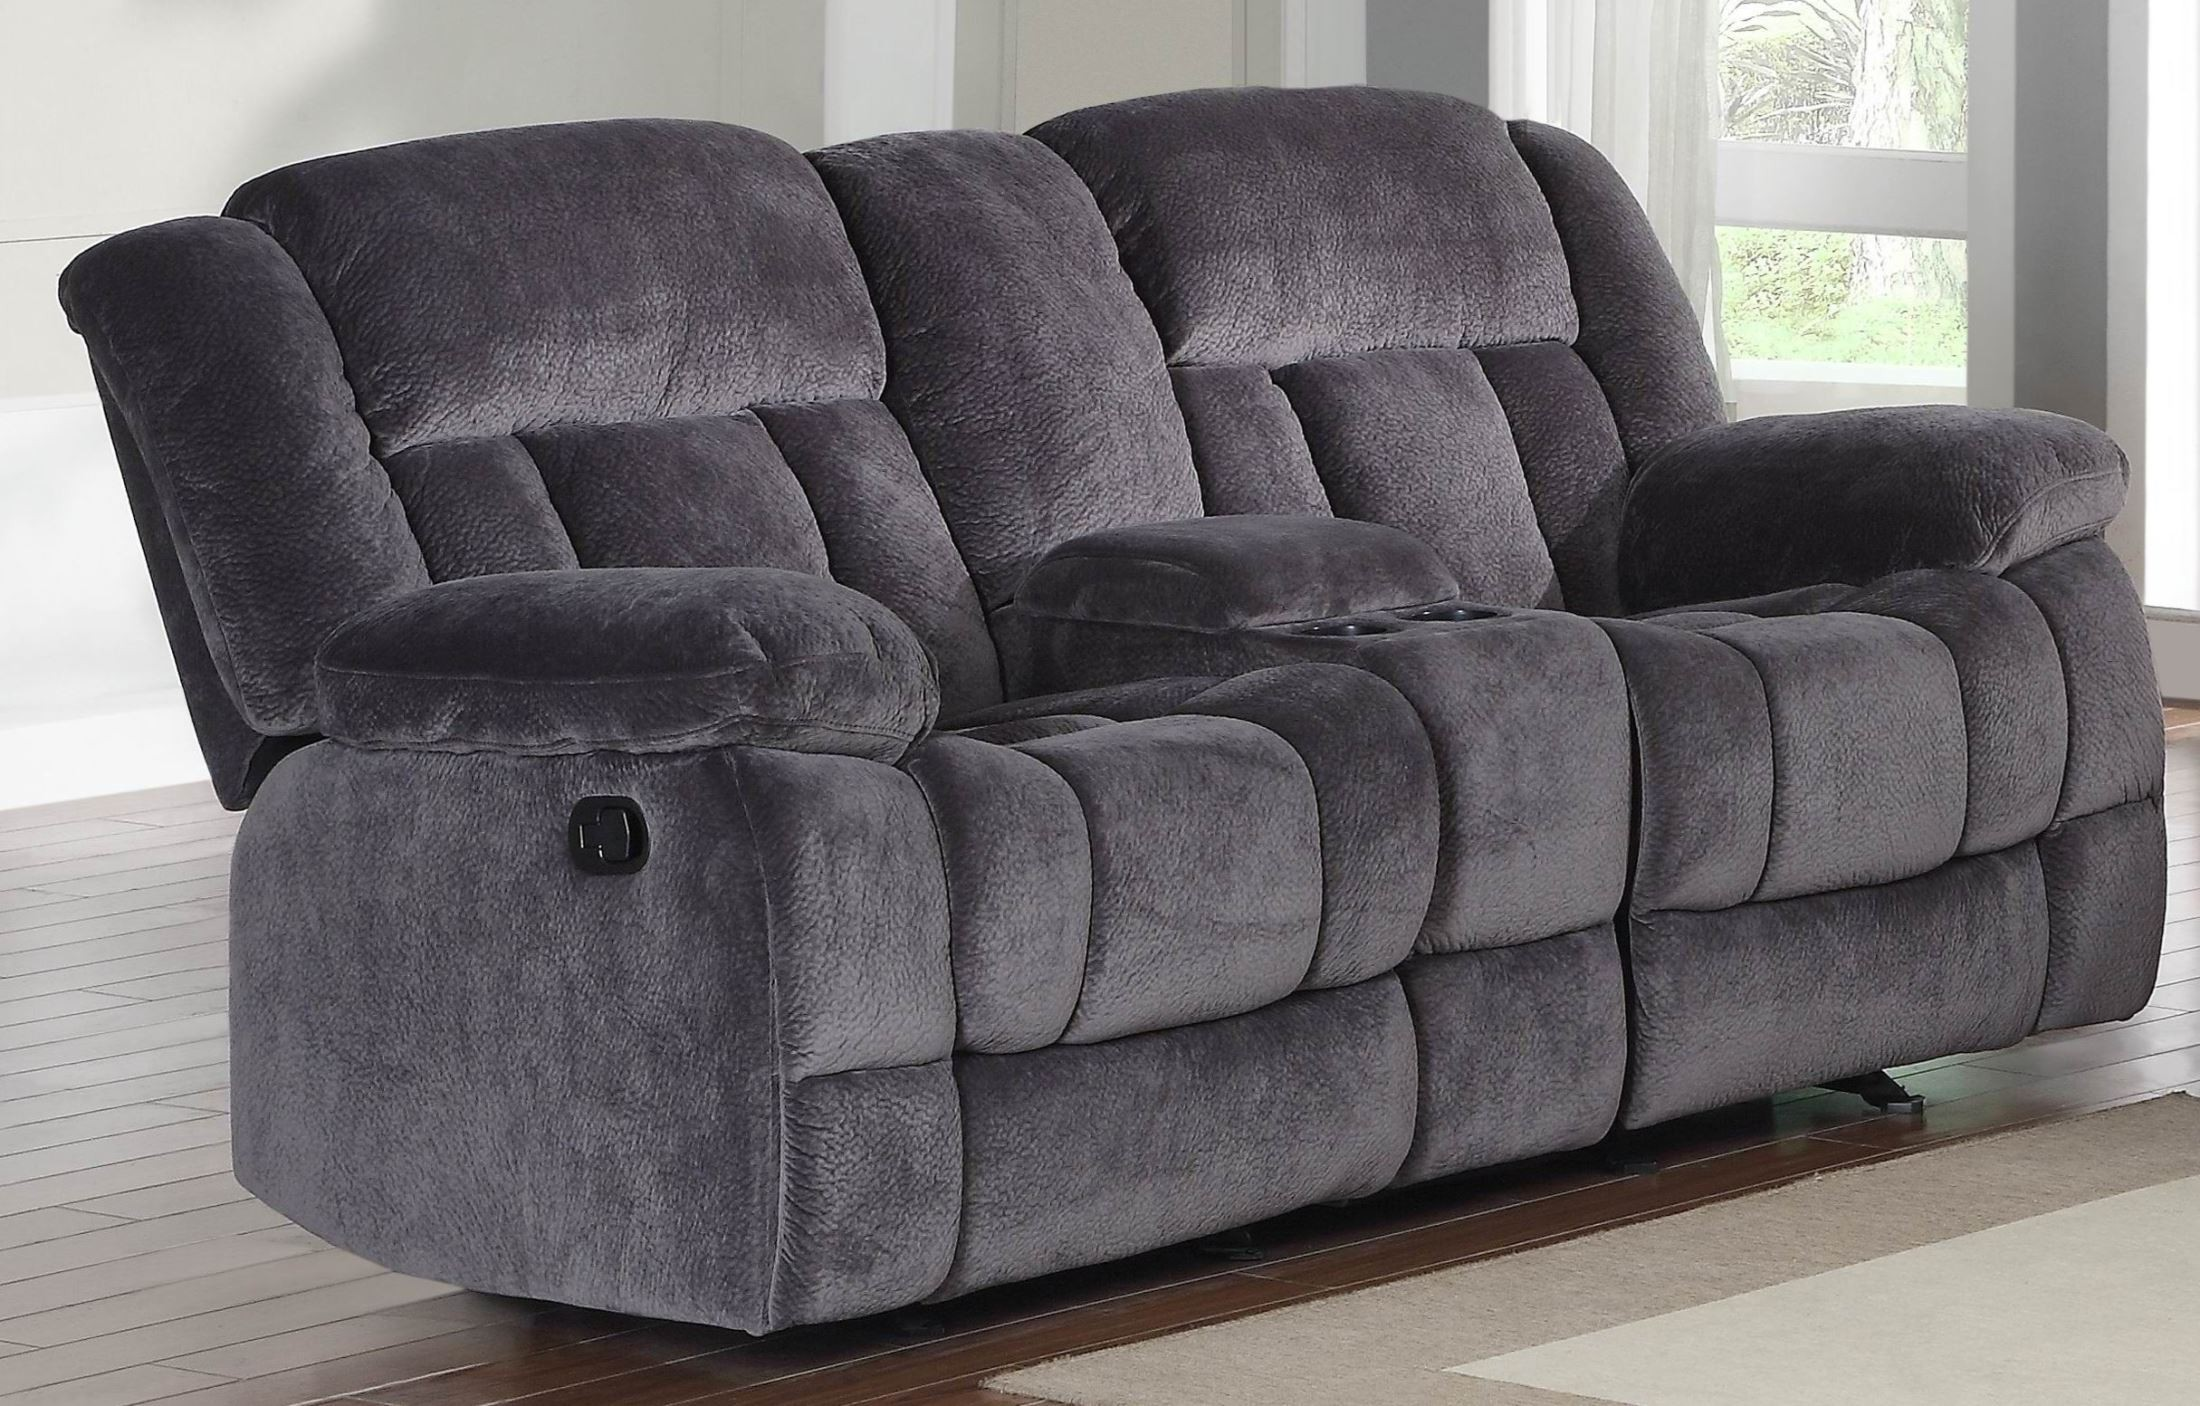 Laurelton Doble Glider Reclining Loveseat With Center Console From Homelegance 9636cc 2